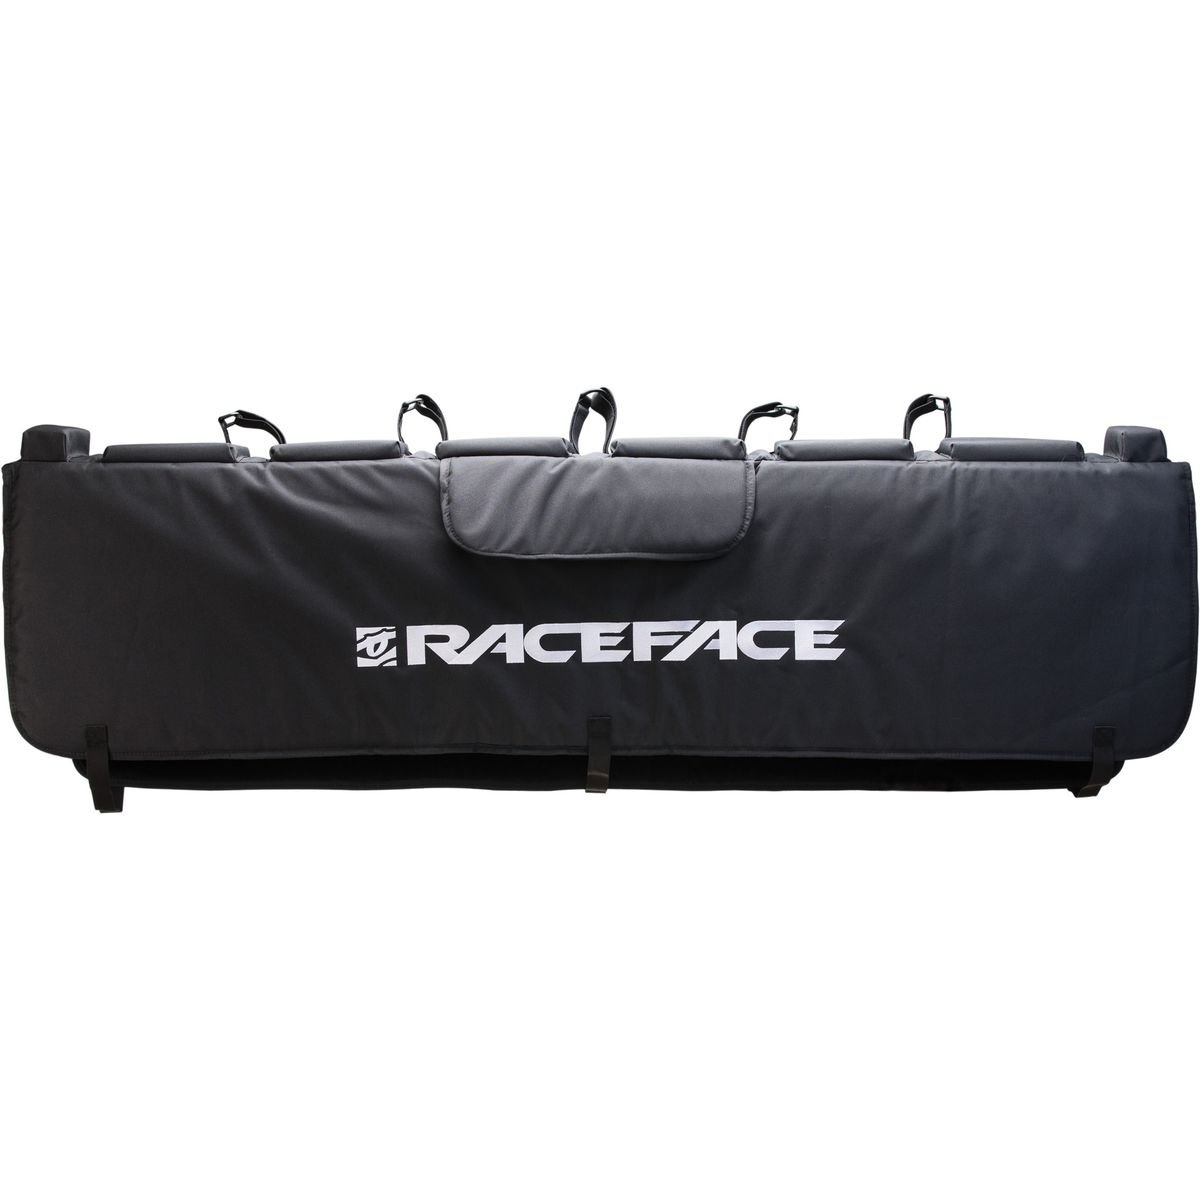 Race Face Tailgate Pad, Black, Small/Medium-57inch